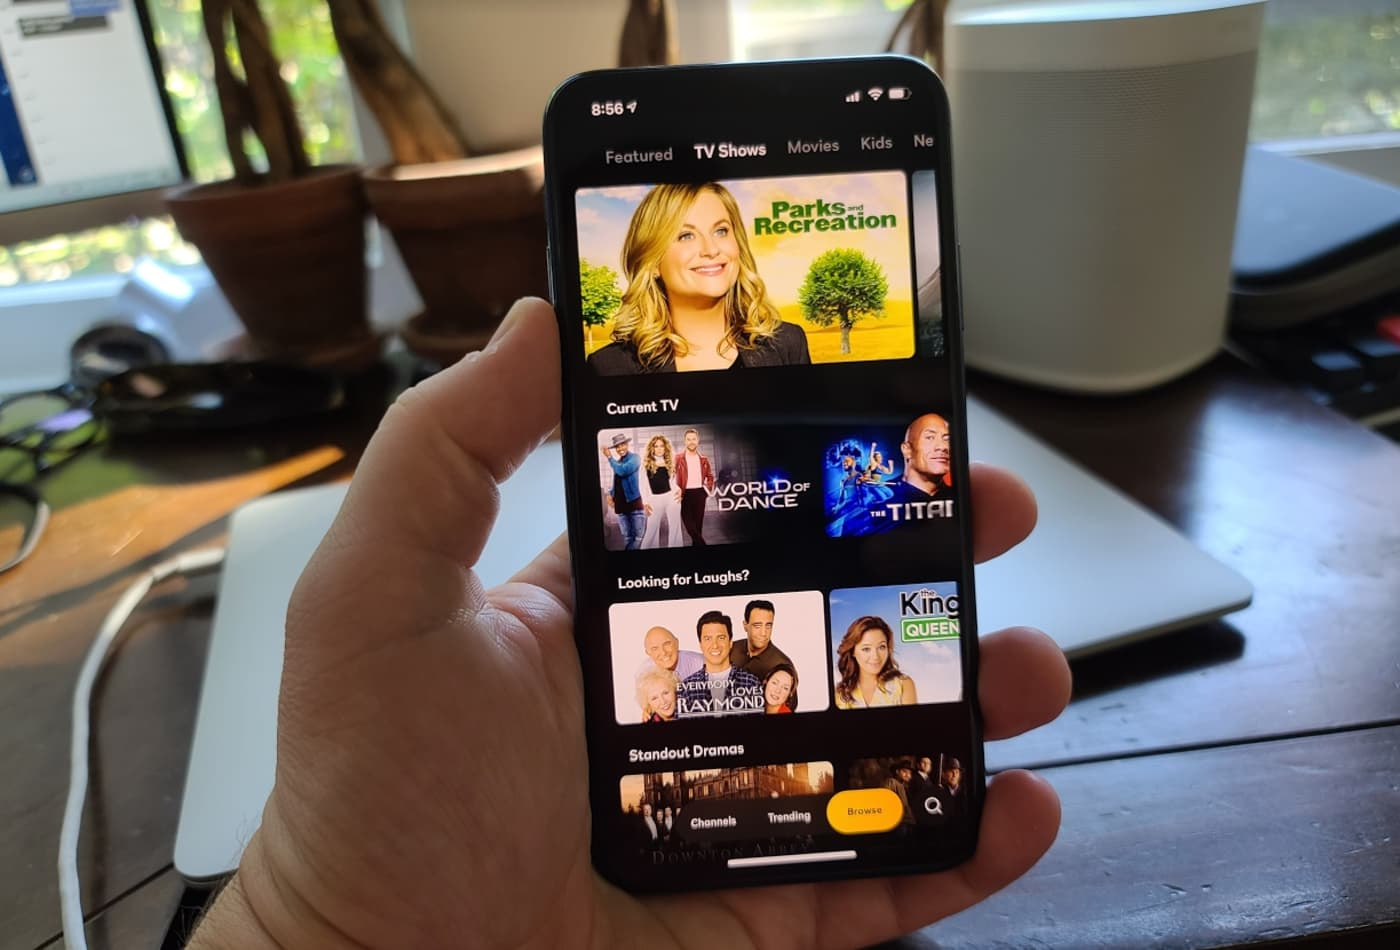 Here's a first look at NBC's streaming service Peacock on iPhone